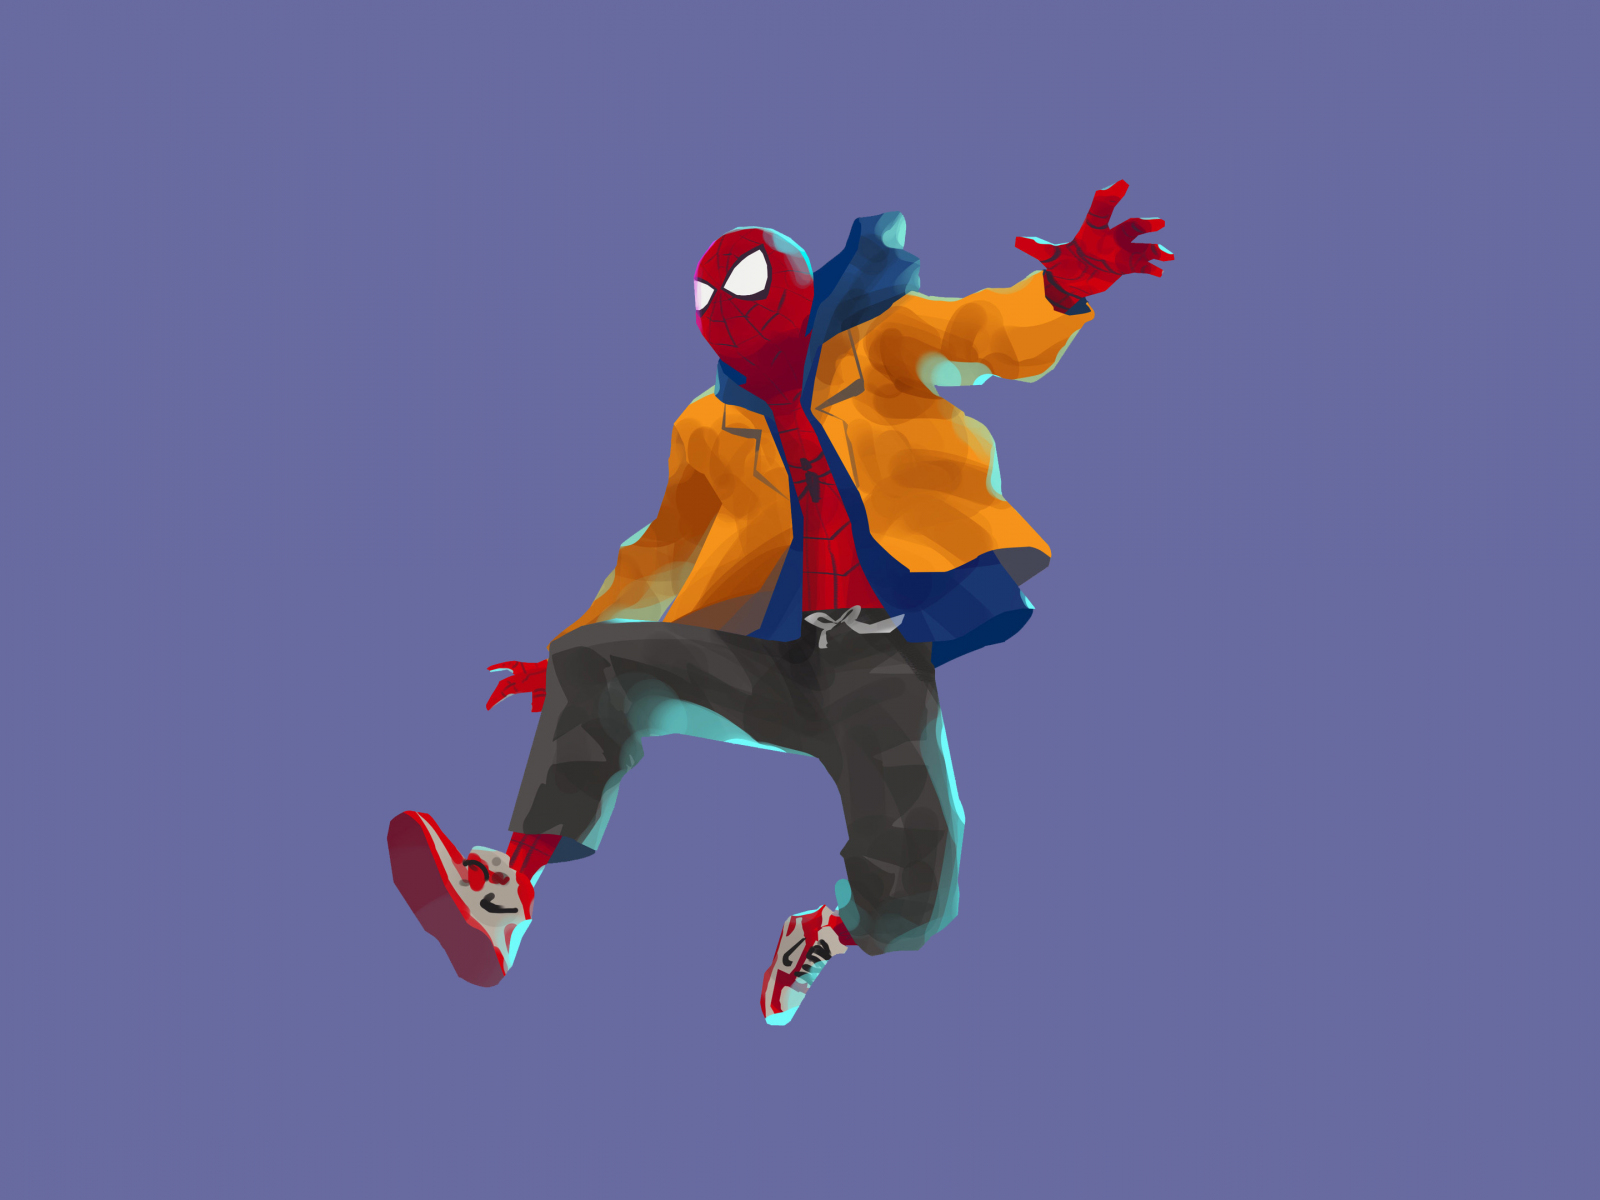 Download 1600x1200 wallpaper spider-man: into the spider ...